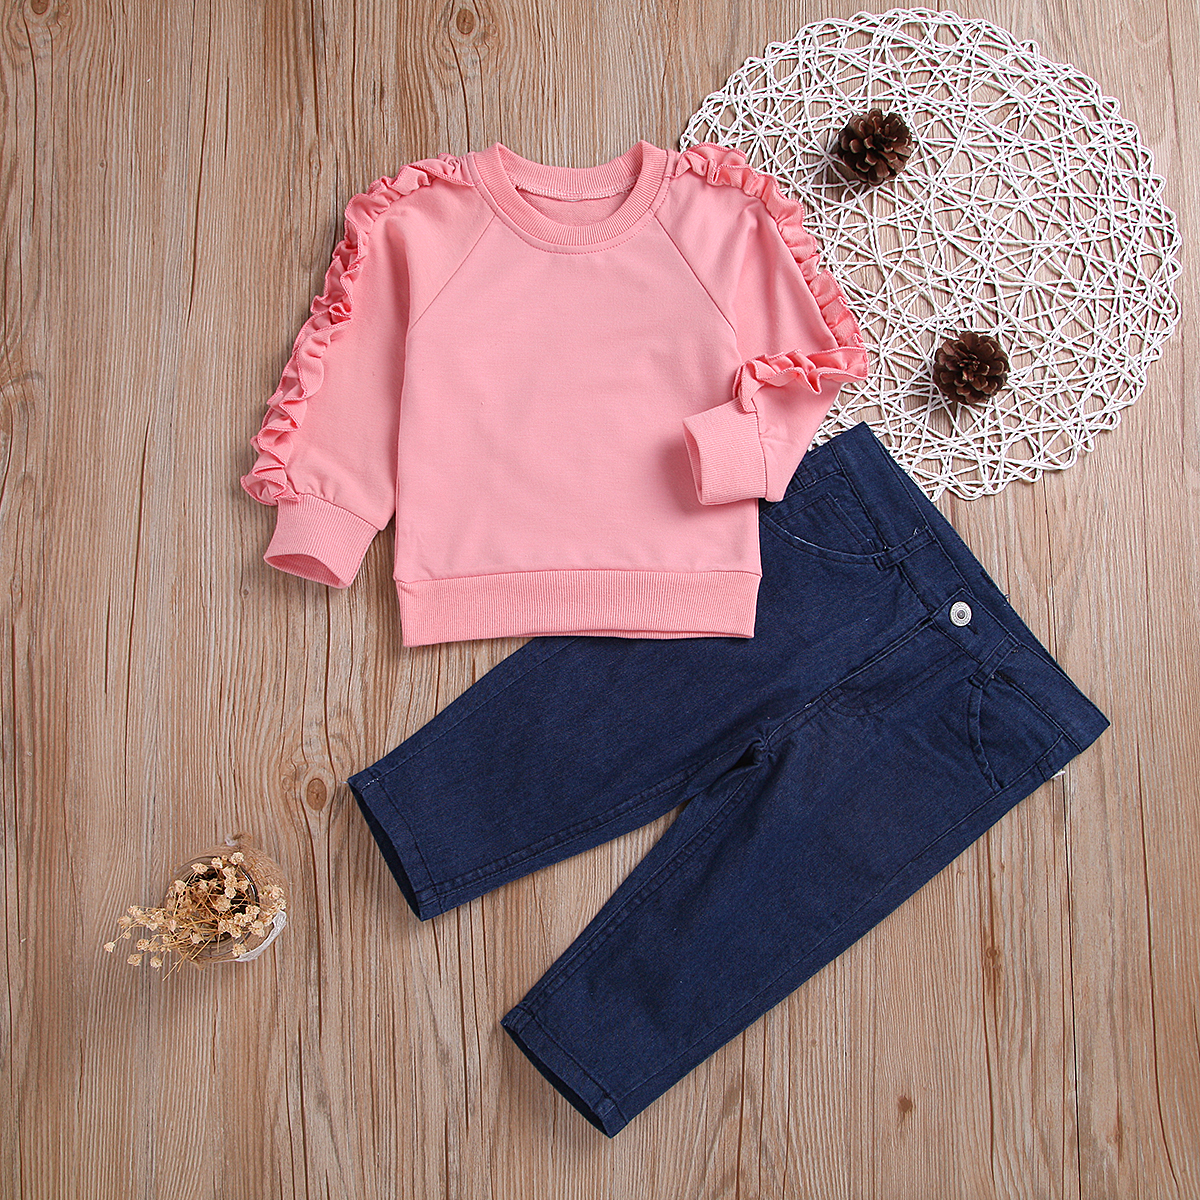 Baby / Toddler Solid Ruffled Sleeve Tee and Pants Set